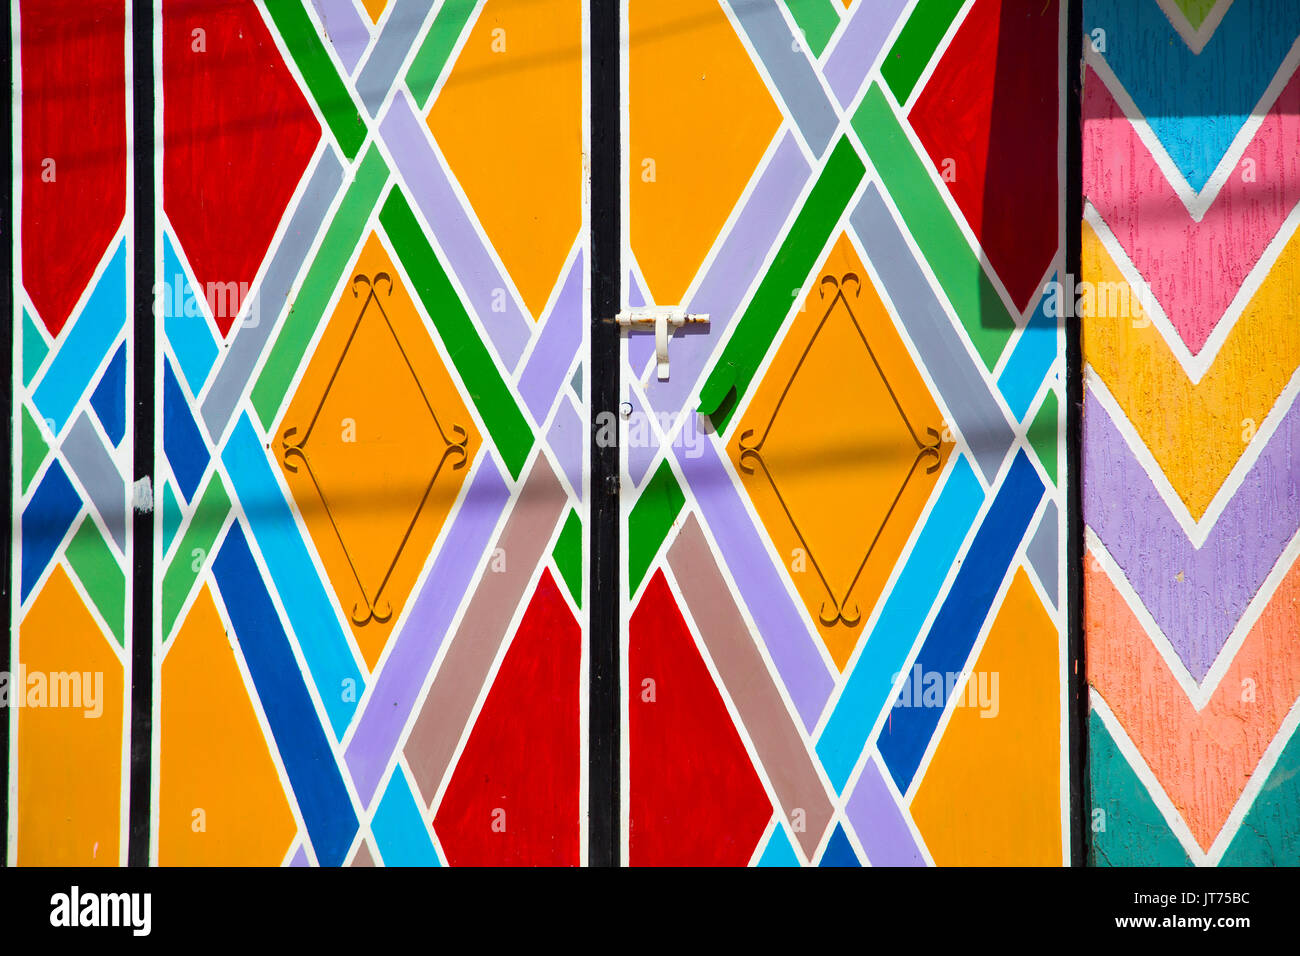 Bhalil, colored entrance door to a school. Morocco, Maghreb North Africa Stock Photo